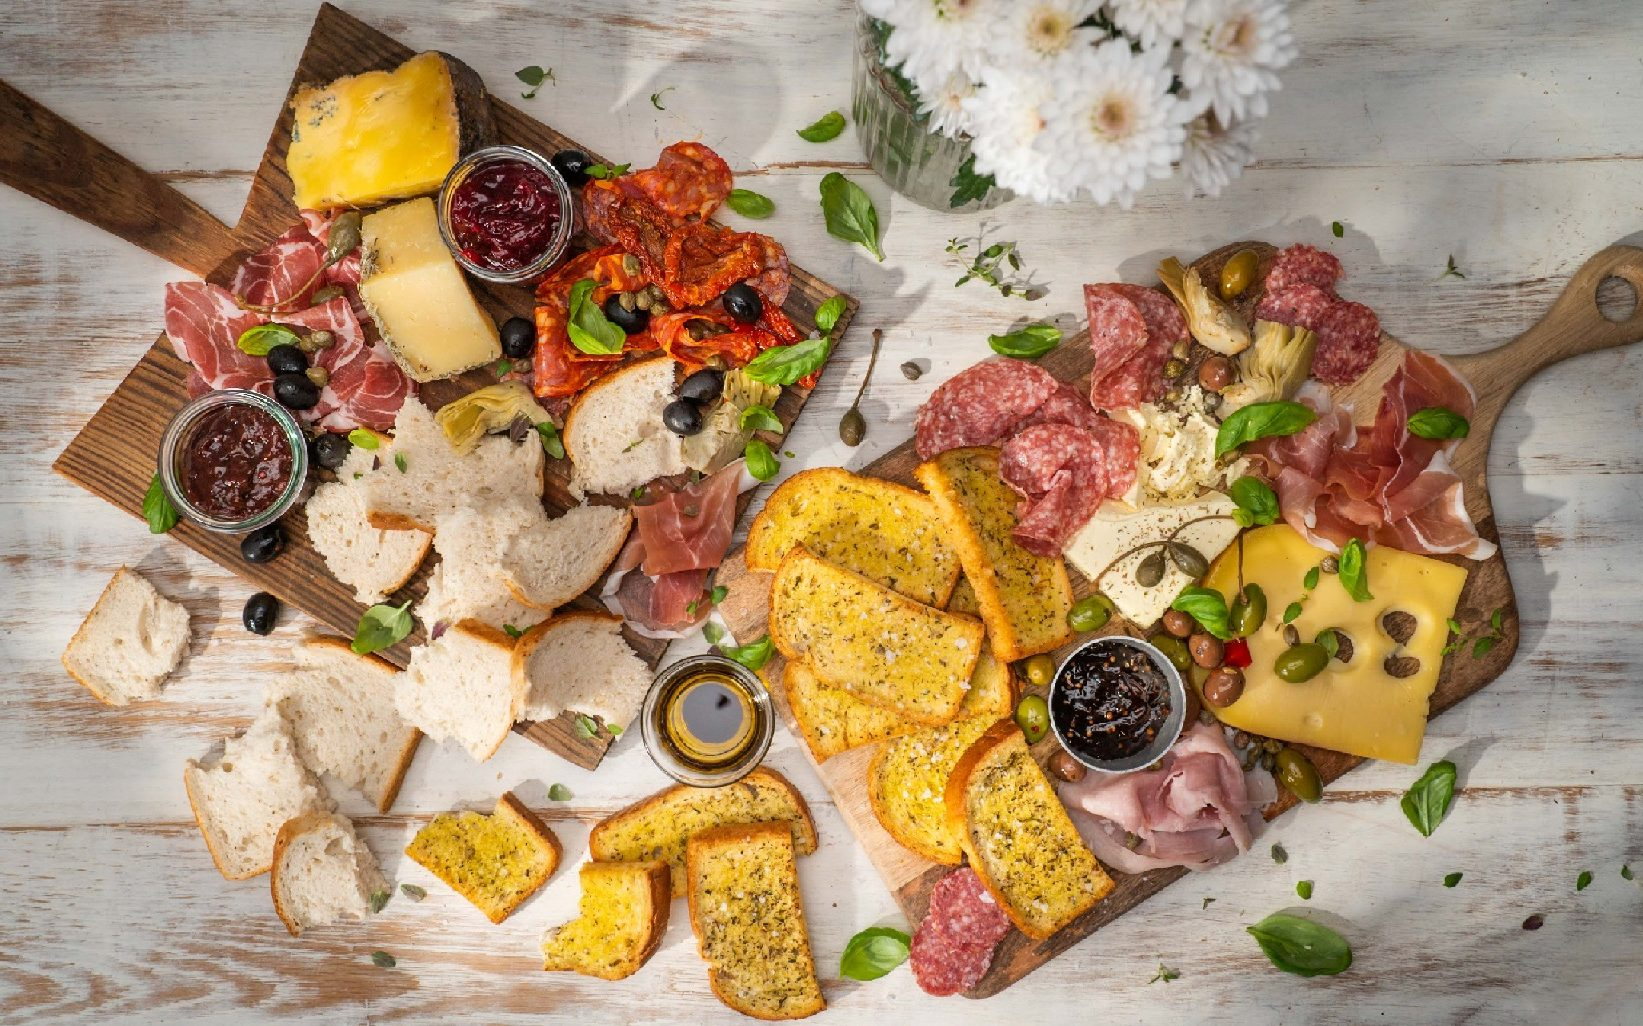 Two wooden board topped with cheeses, deli food and bread with bunch of white flowers